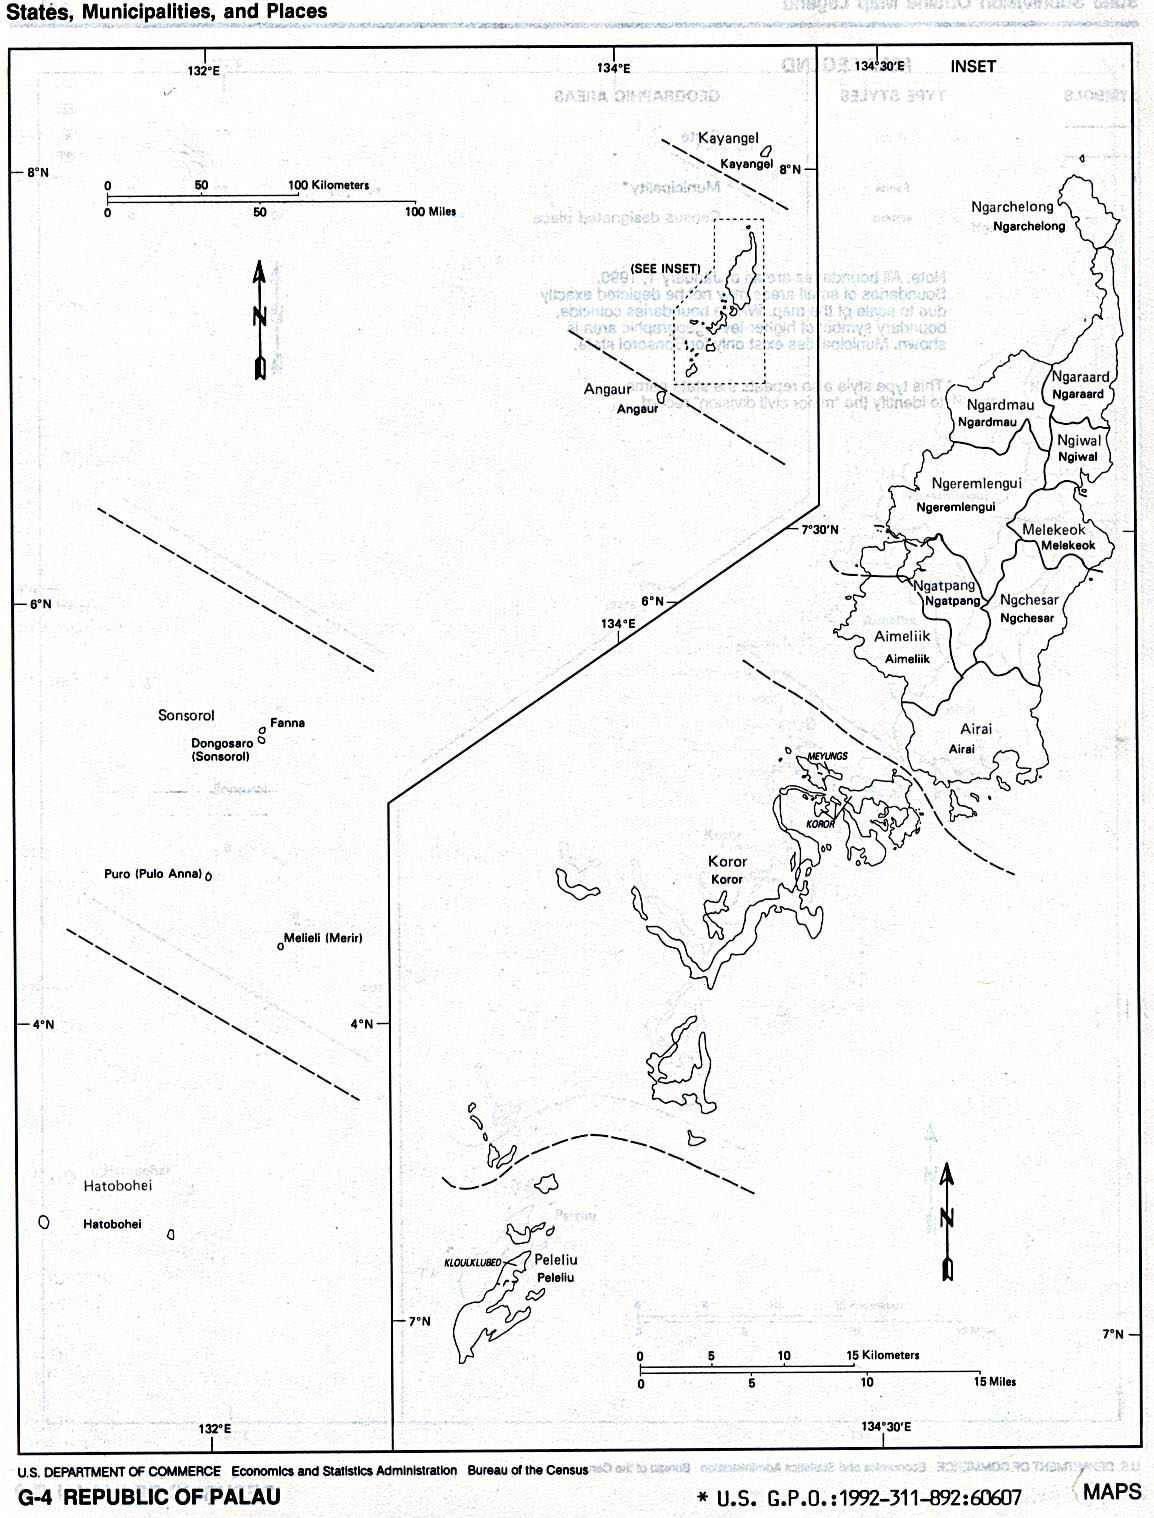 Palau (Outline Map) U.S. Bureau of the Census 1990